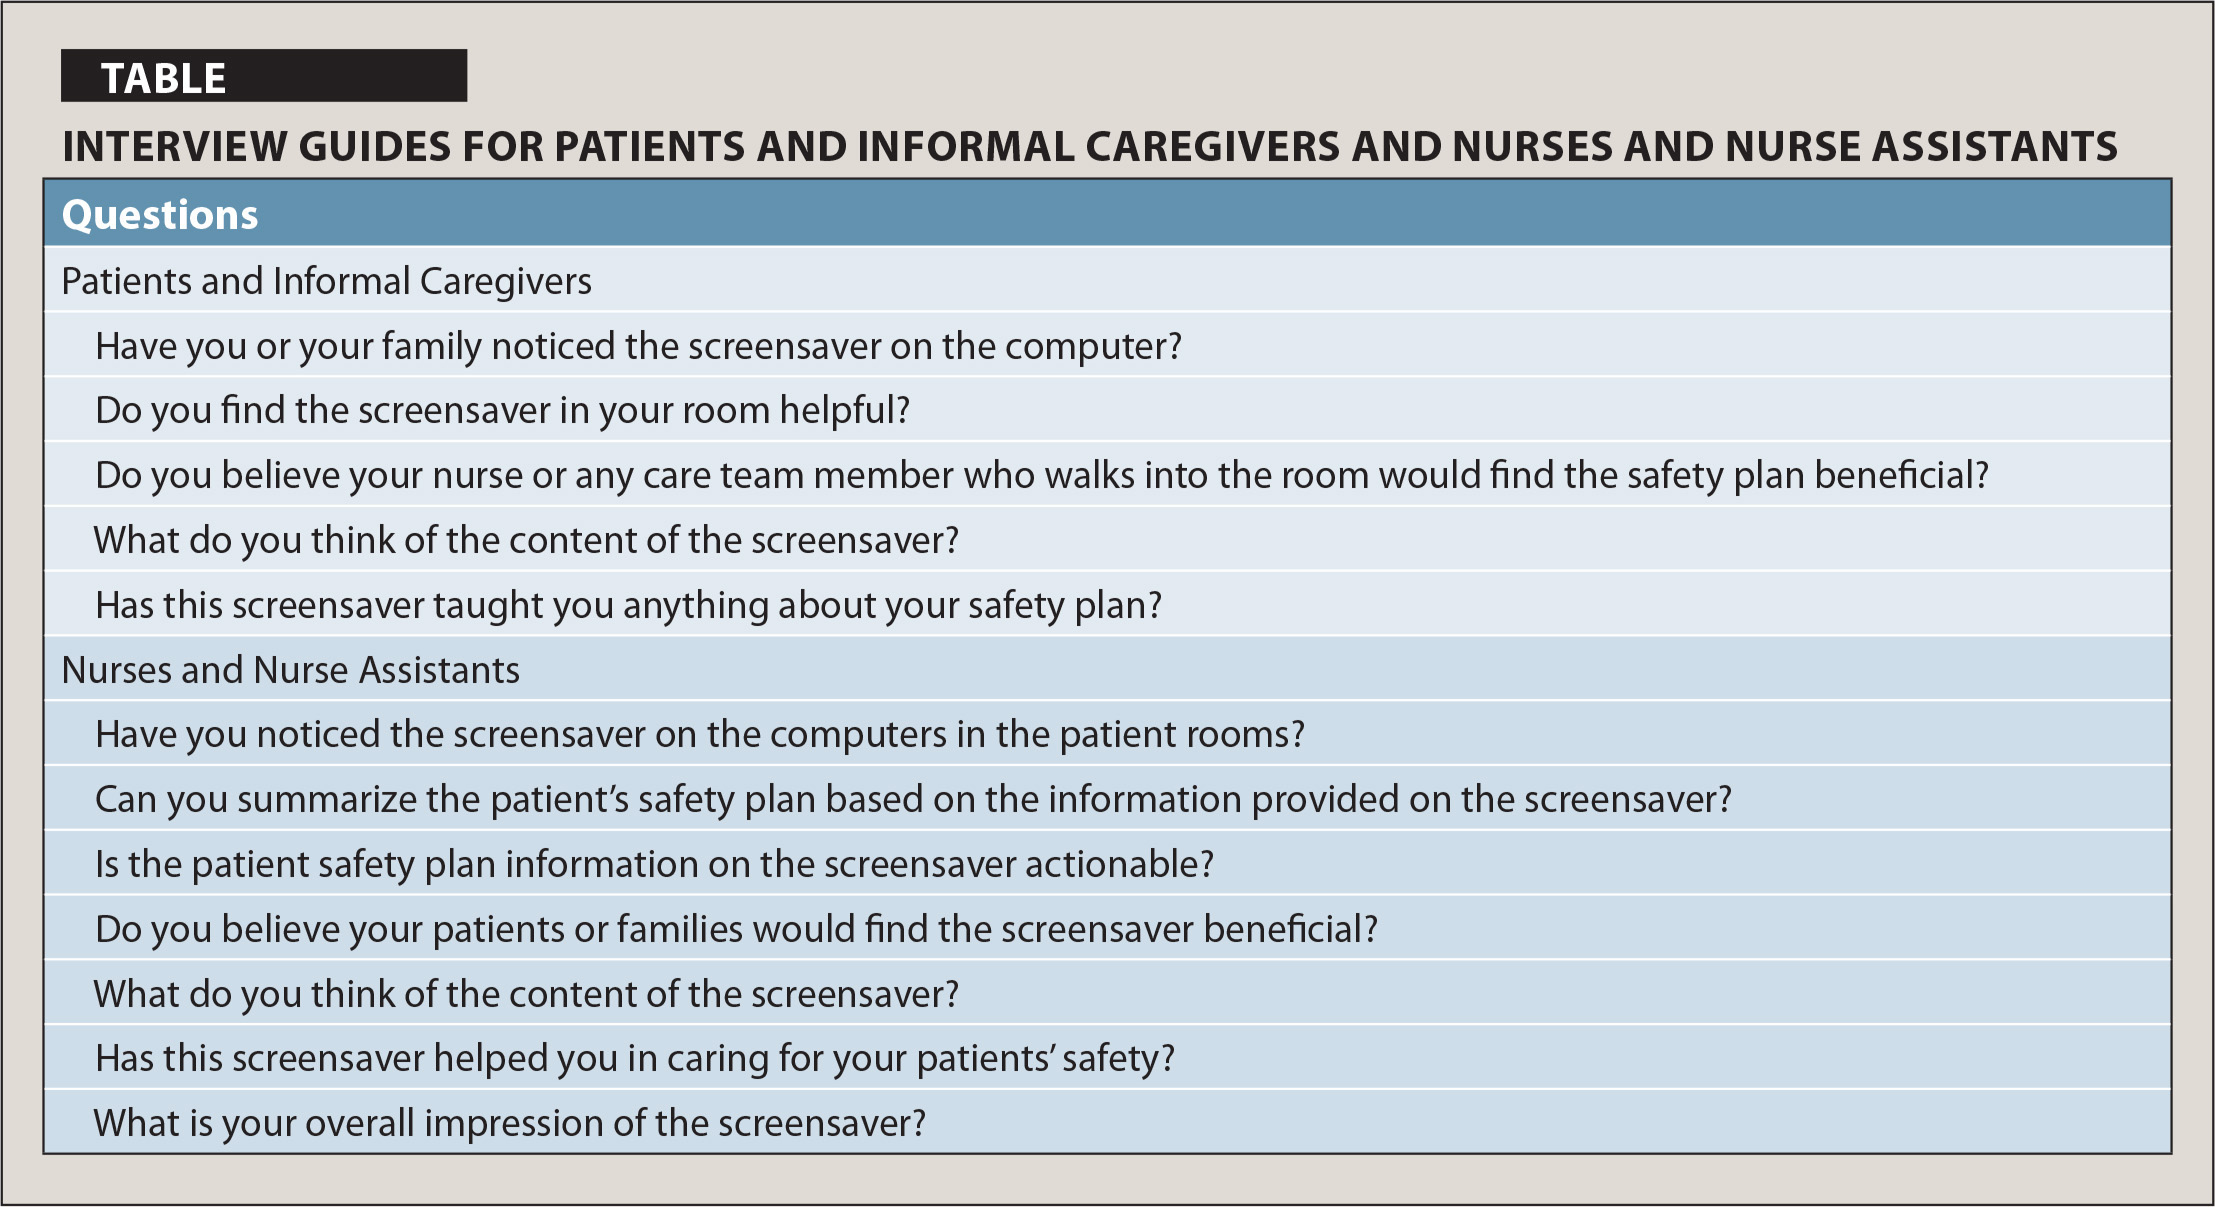 Nurse, Patient, and Care Partner Perceptions of a Personalized ...